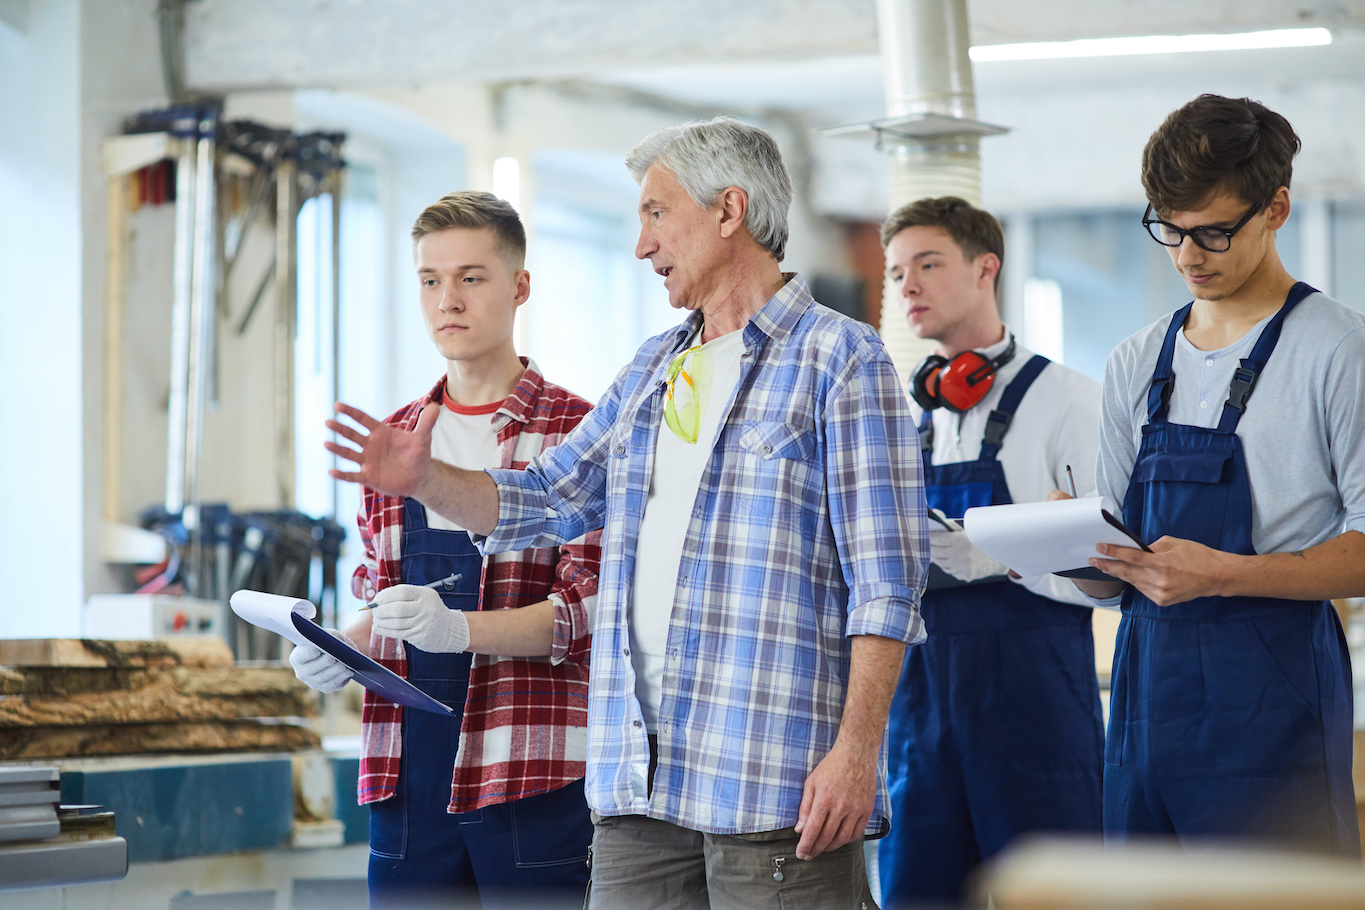 Summer internship: Old man talking to young interns and taking down notes